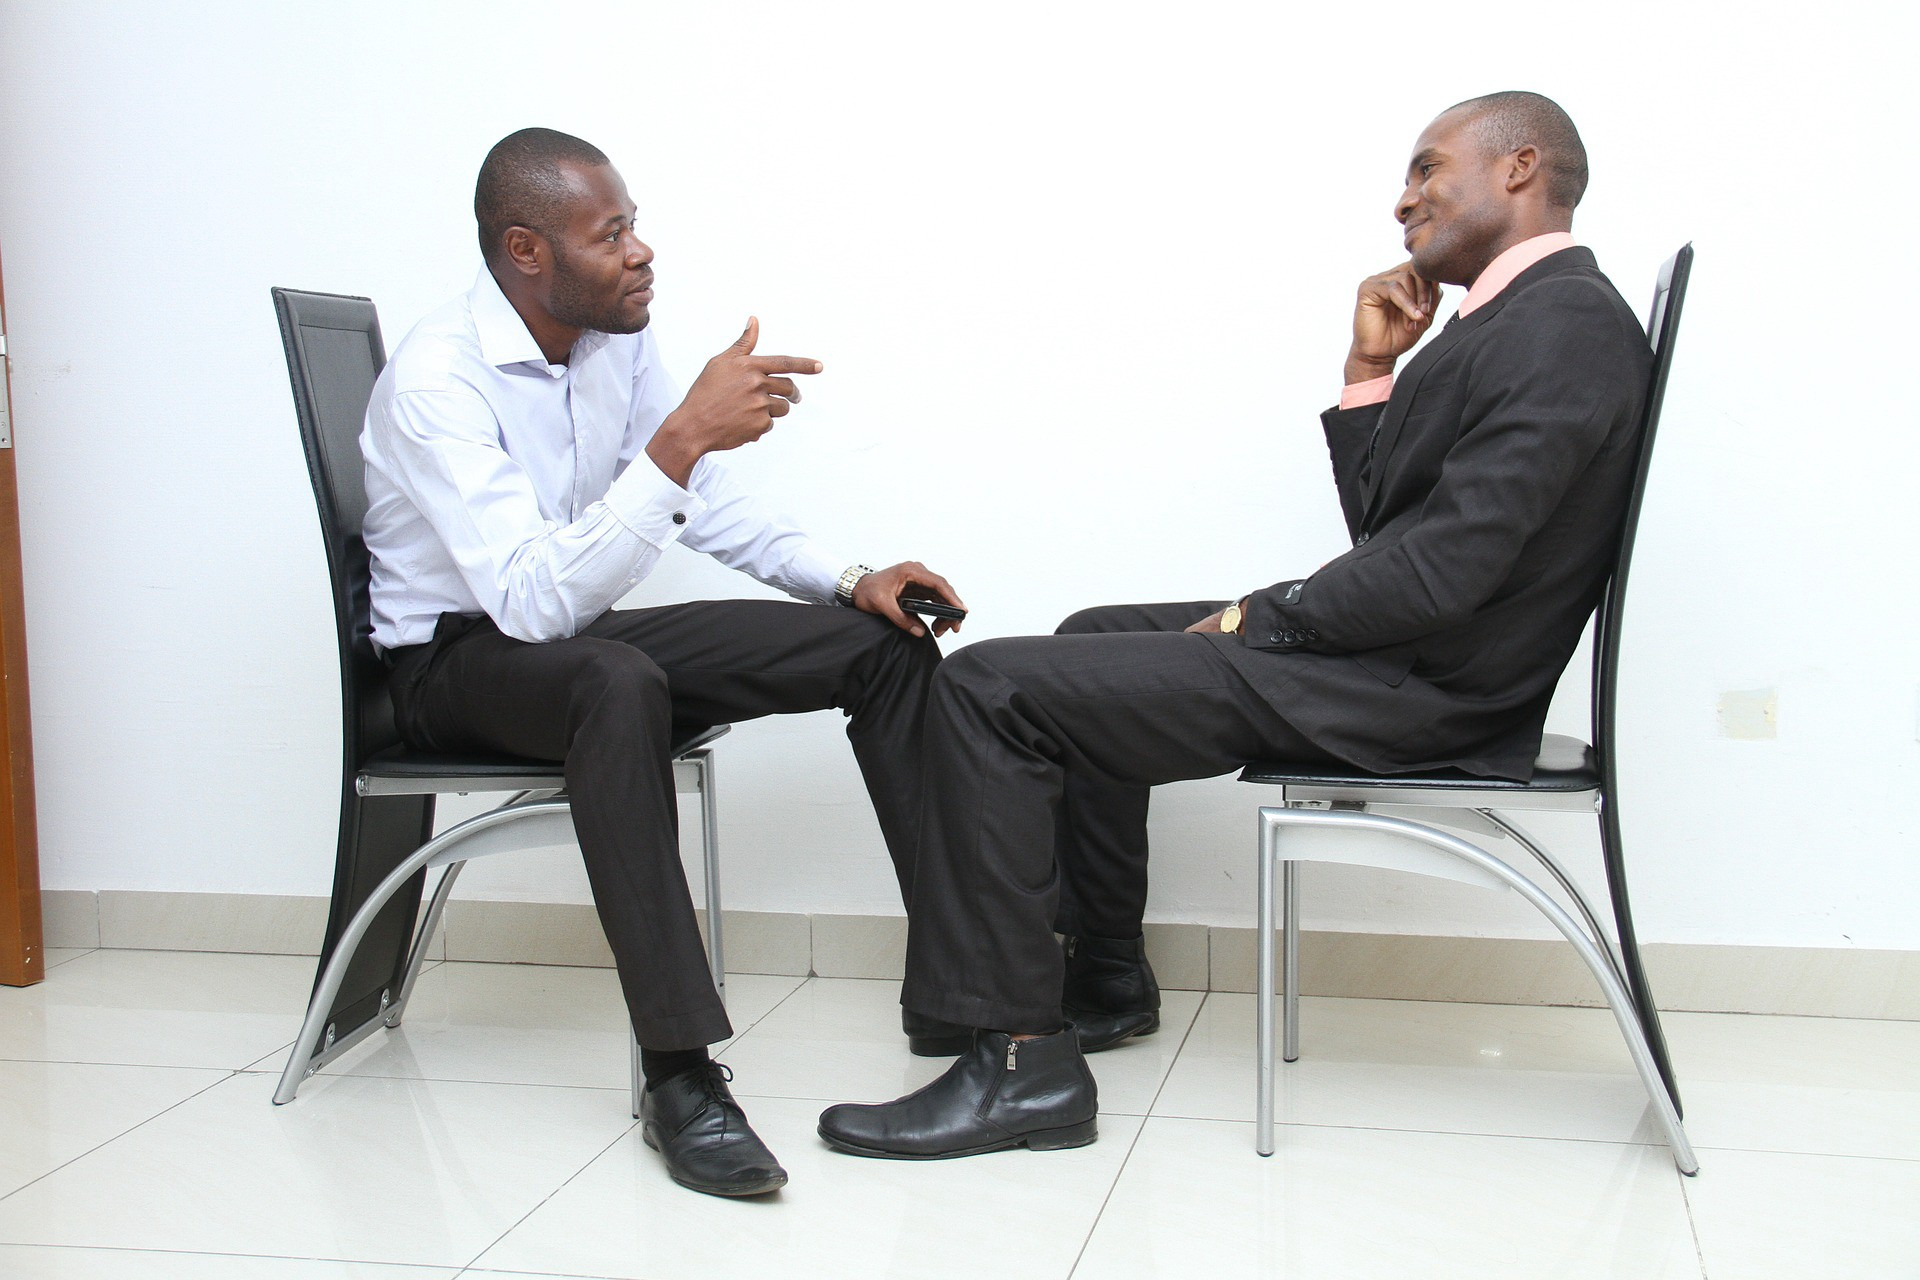 unconventional job interview questions to ask for better screening